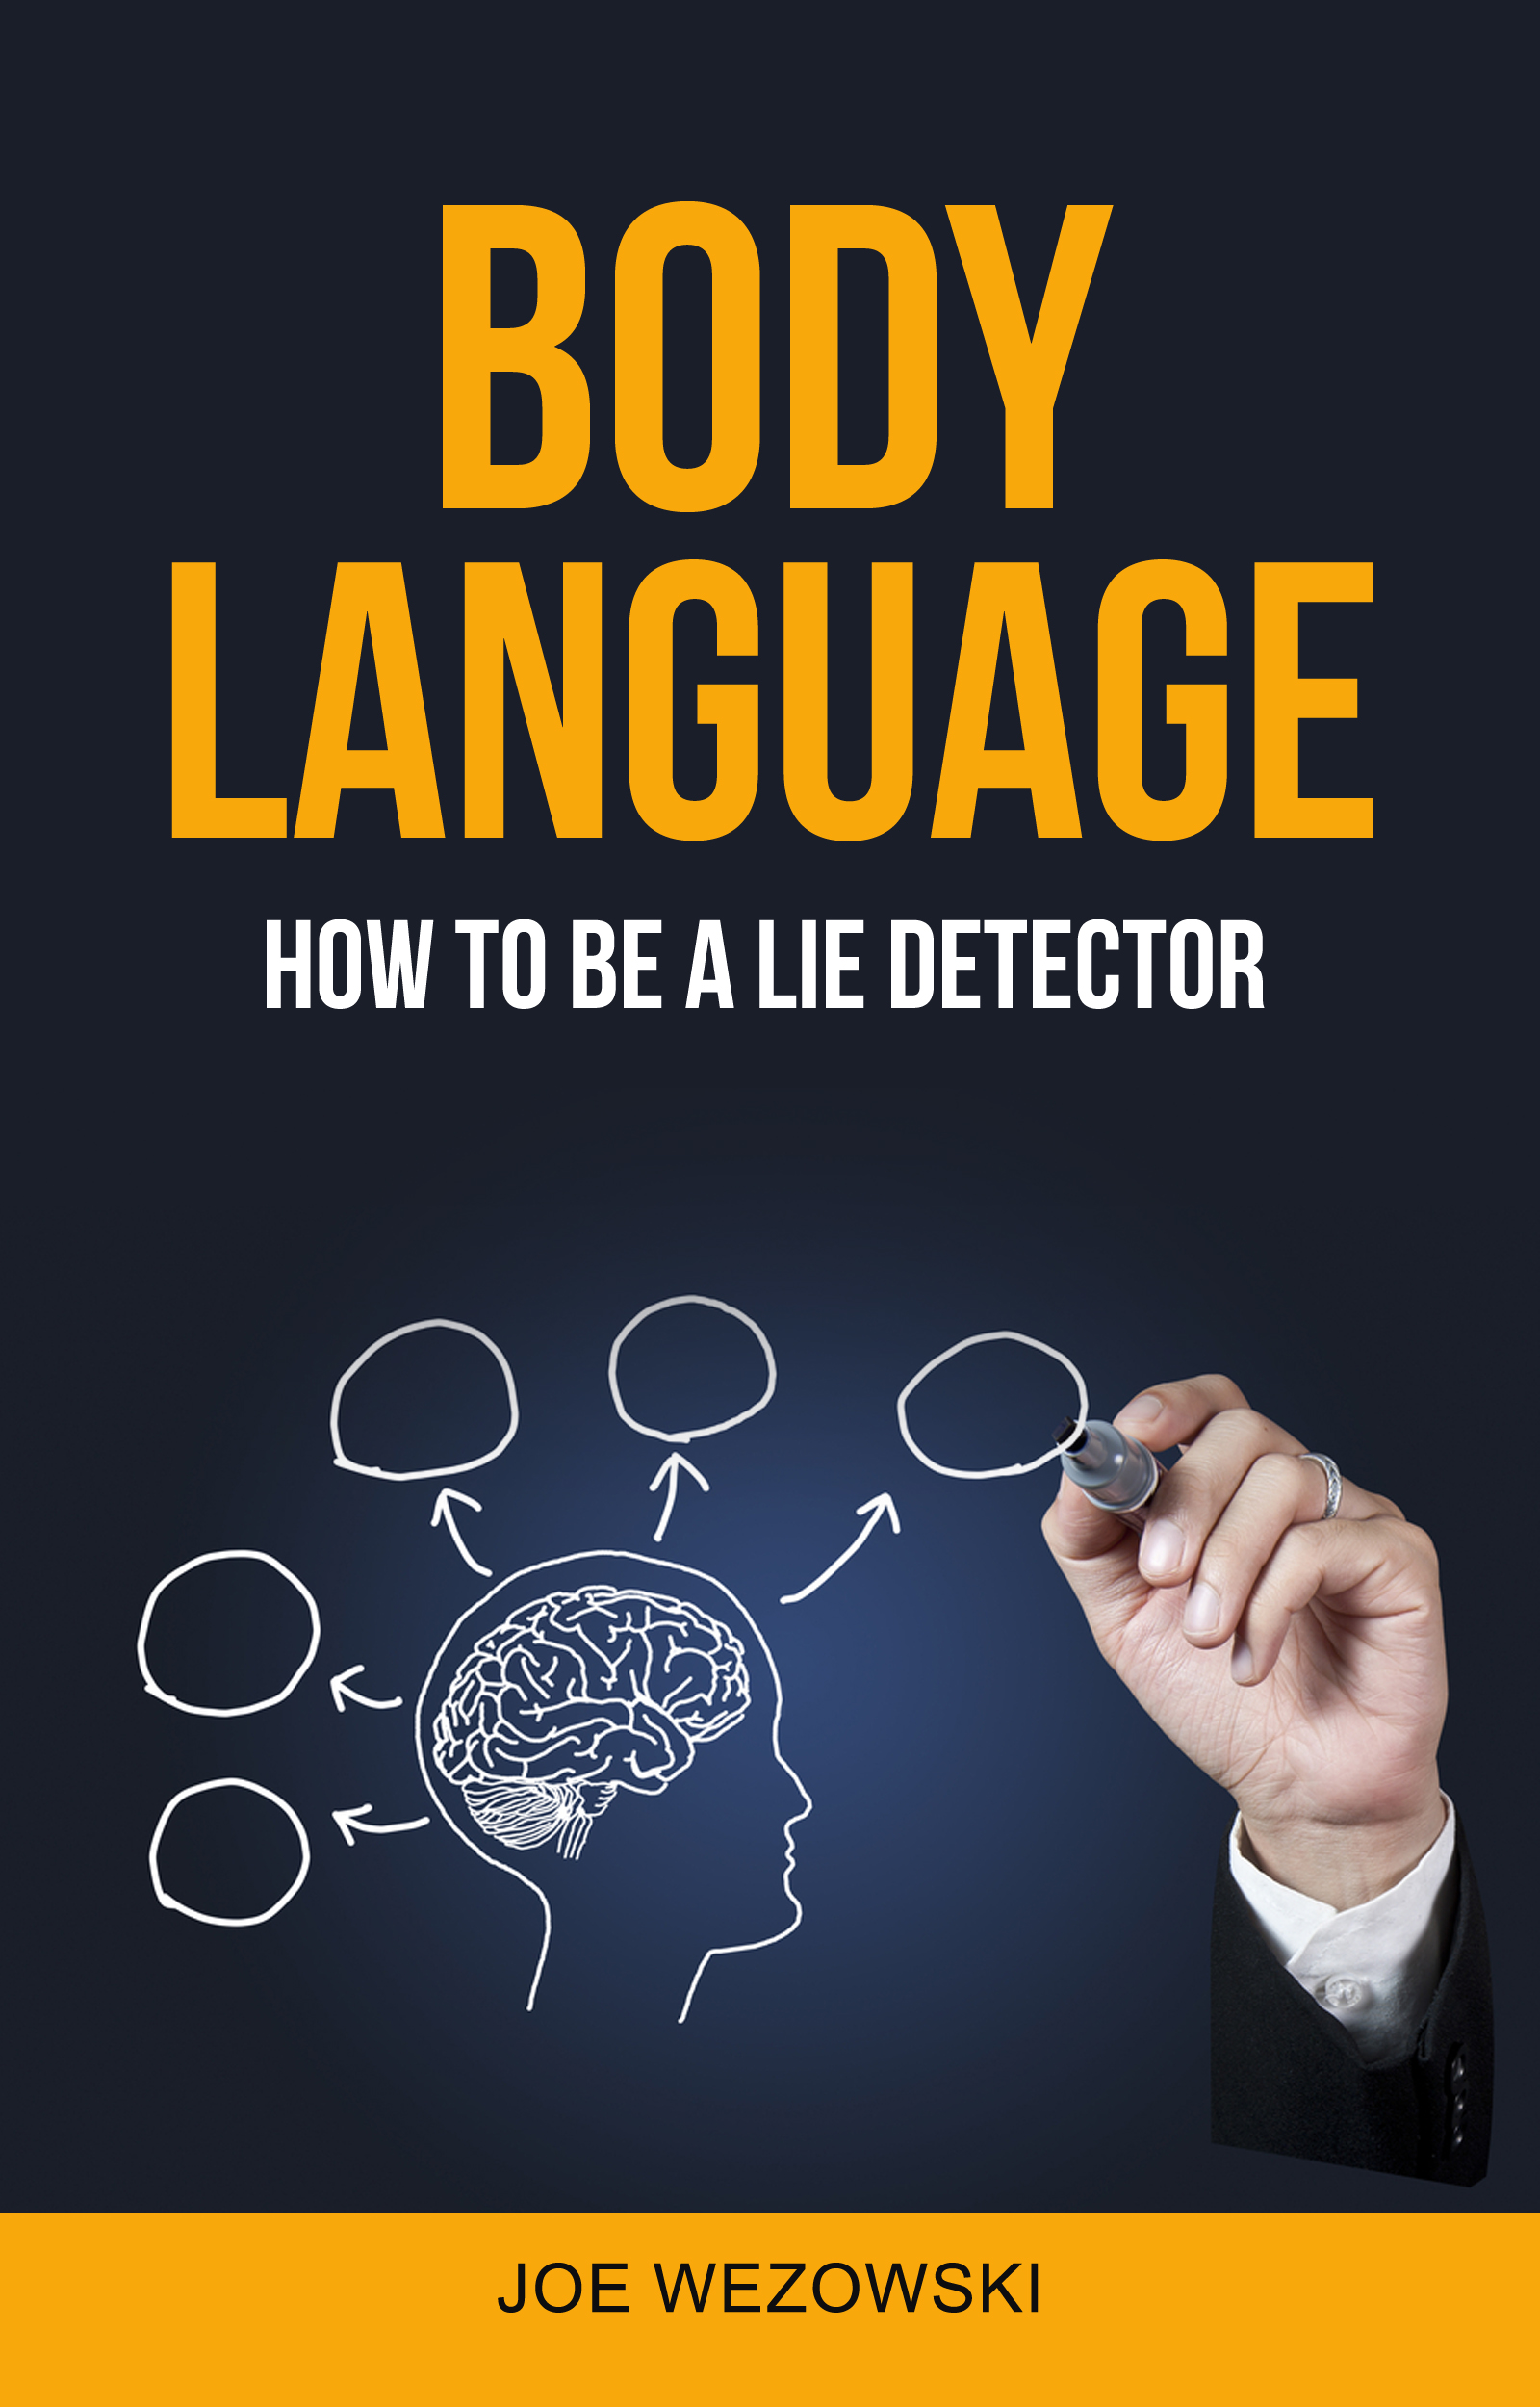 Body language: how to be a lie detector